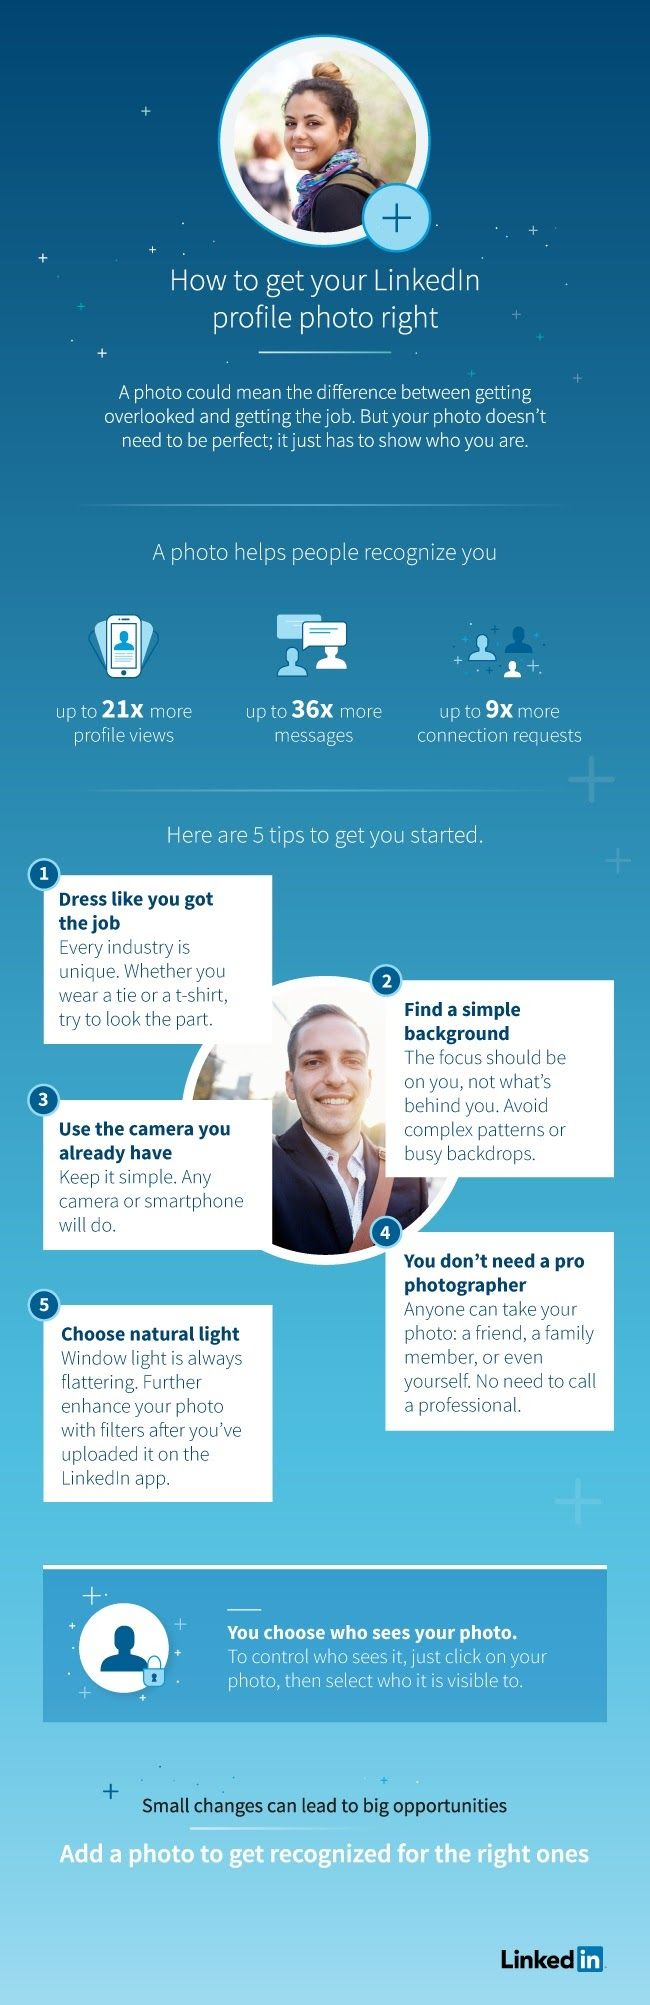 How to Get Your LinkedIn Profile Photo right - #infographic